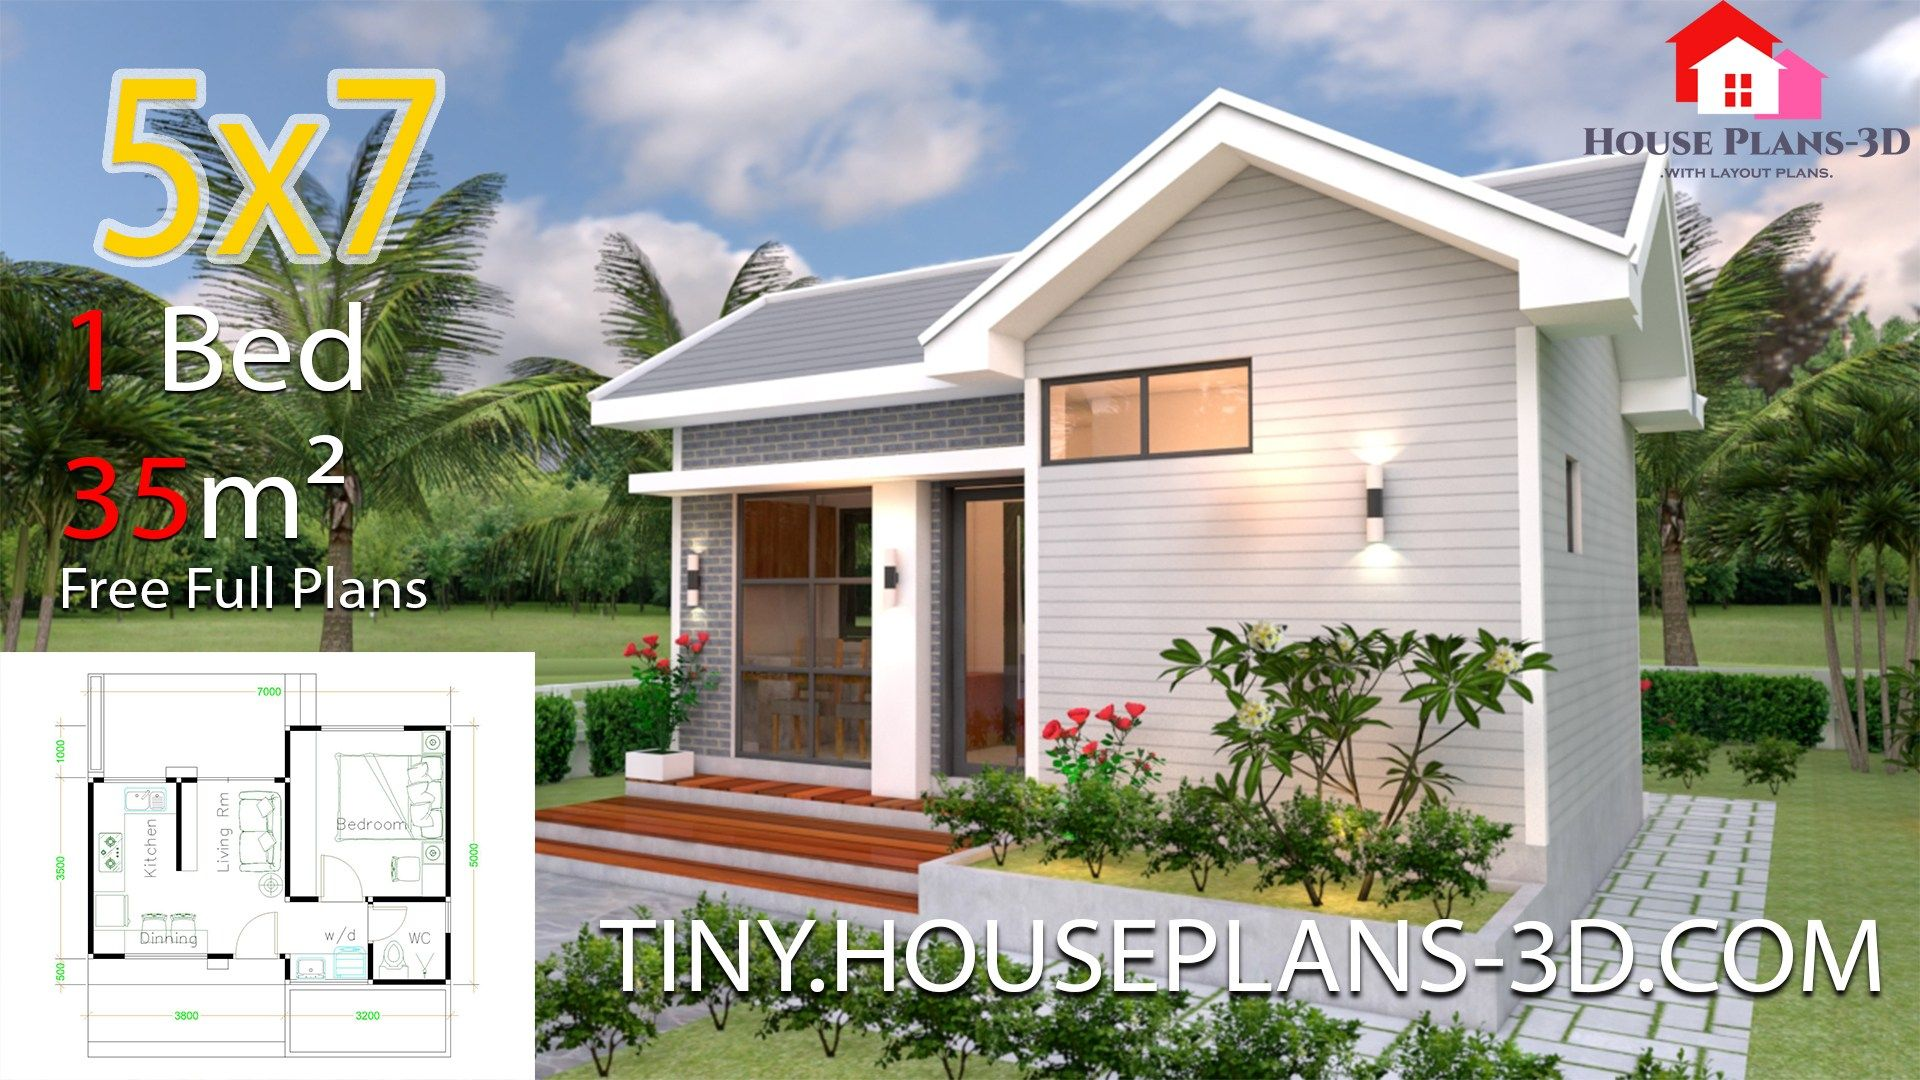 Small House Design Plans 5x7 With One Bedroom Shed Roof The House Has Car Parking And Garden Small House Design Plans Small House Blueprints Tiny House Plans